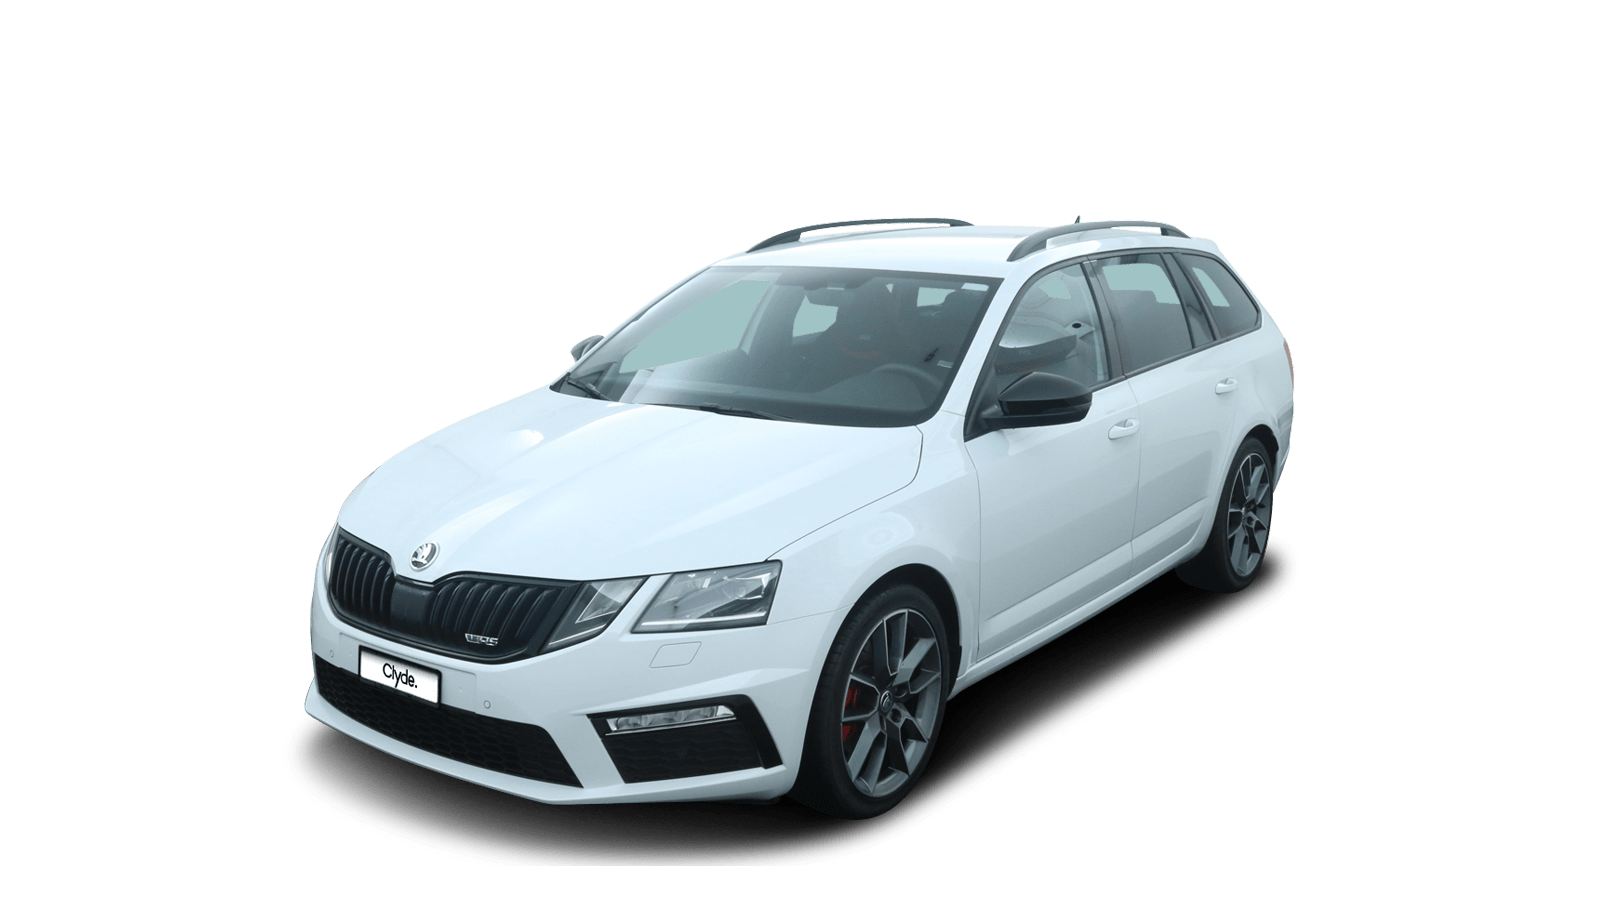 ŠKODA OCTAVIA COMBI RS White front - Clyde car subscription